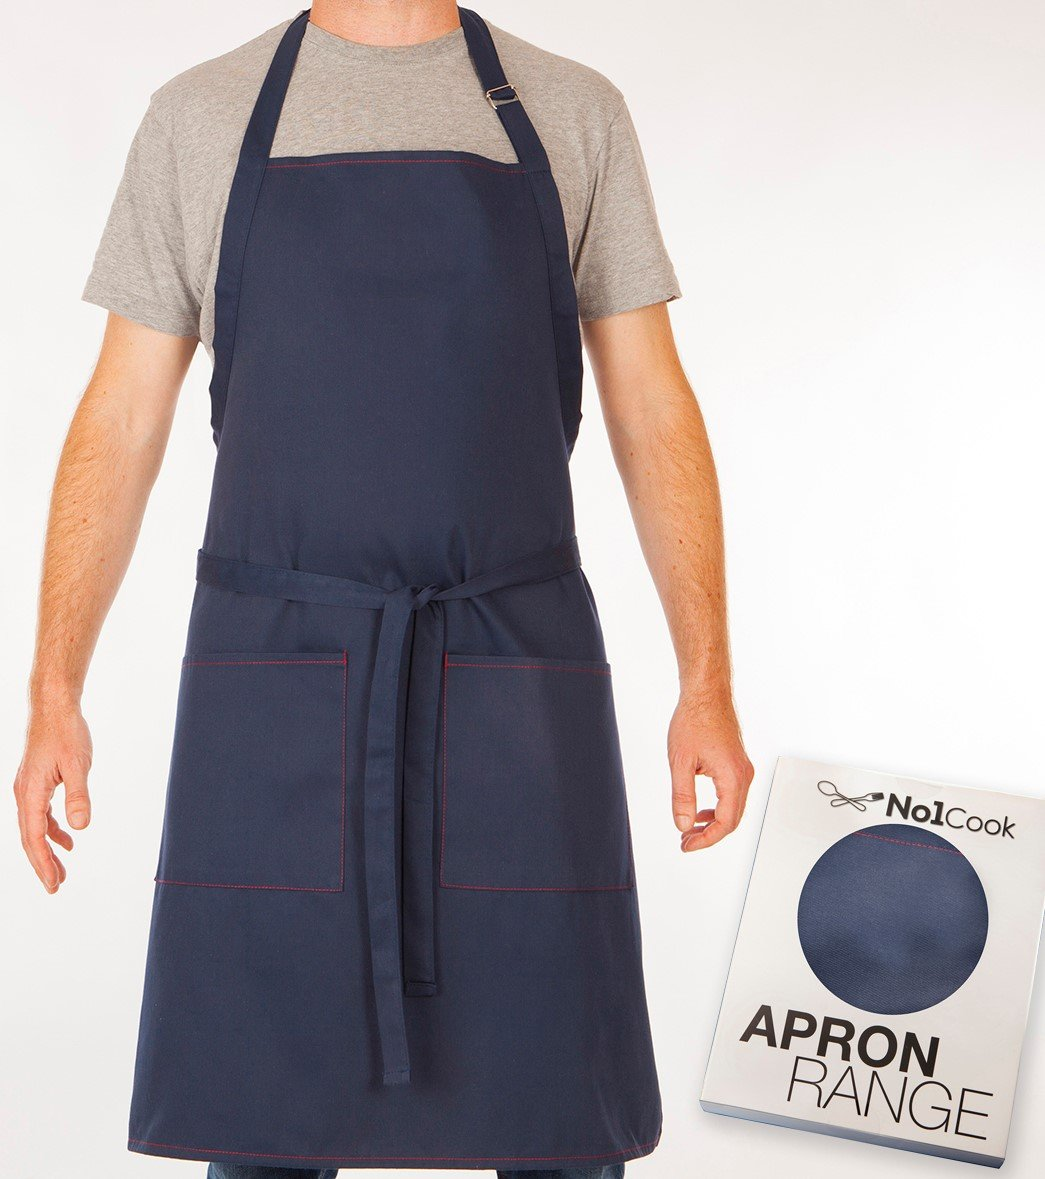 amazoncom cooking apron by no1cook u0026 comfortable blue chef apron for men and women bib apron with pockets and adjustable neck suitable - Cooking Aprons